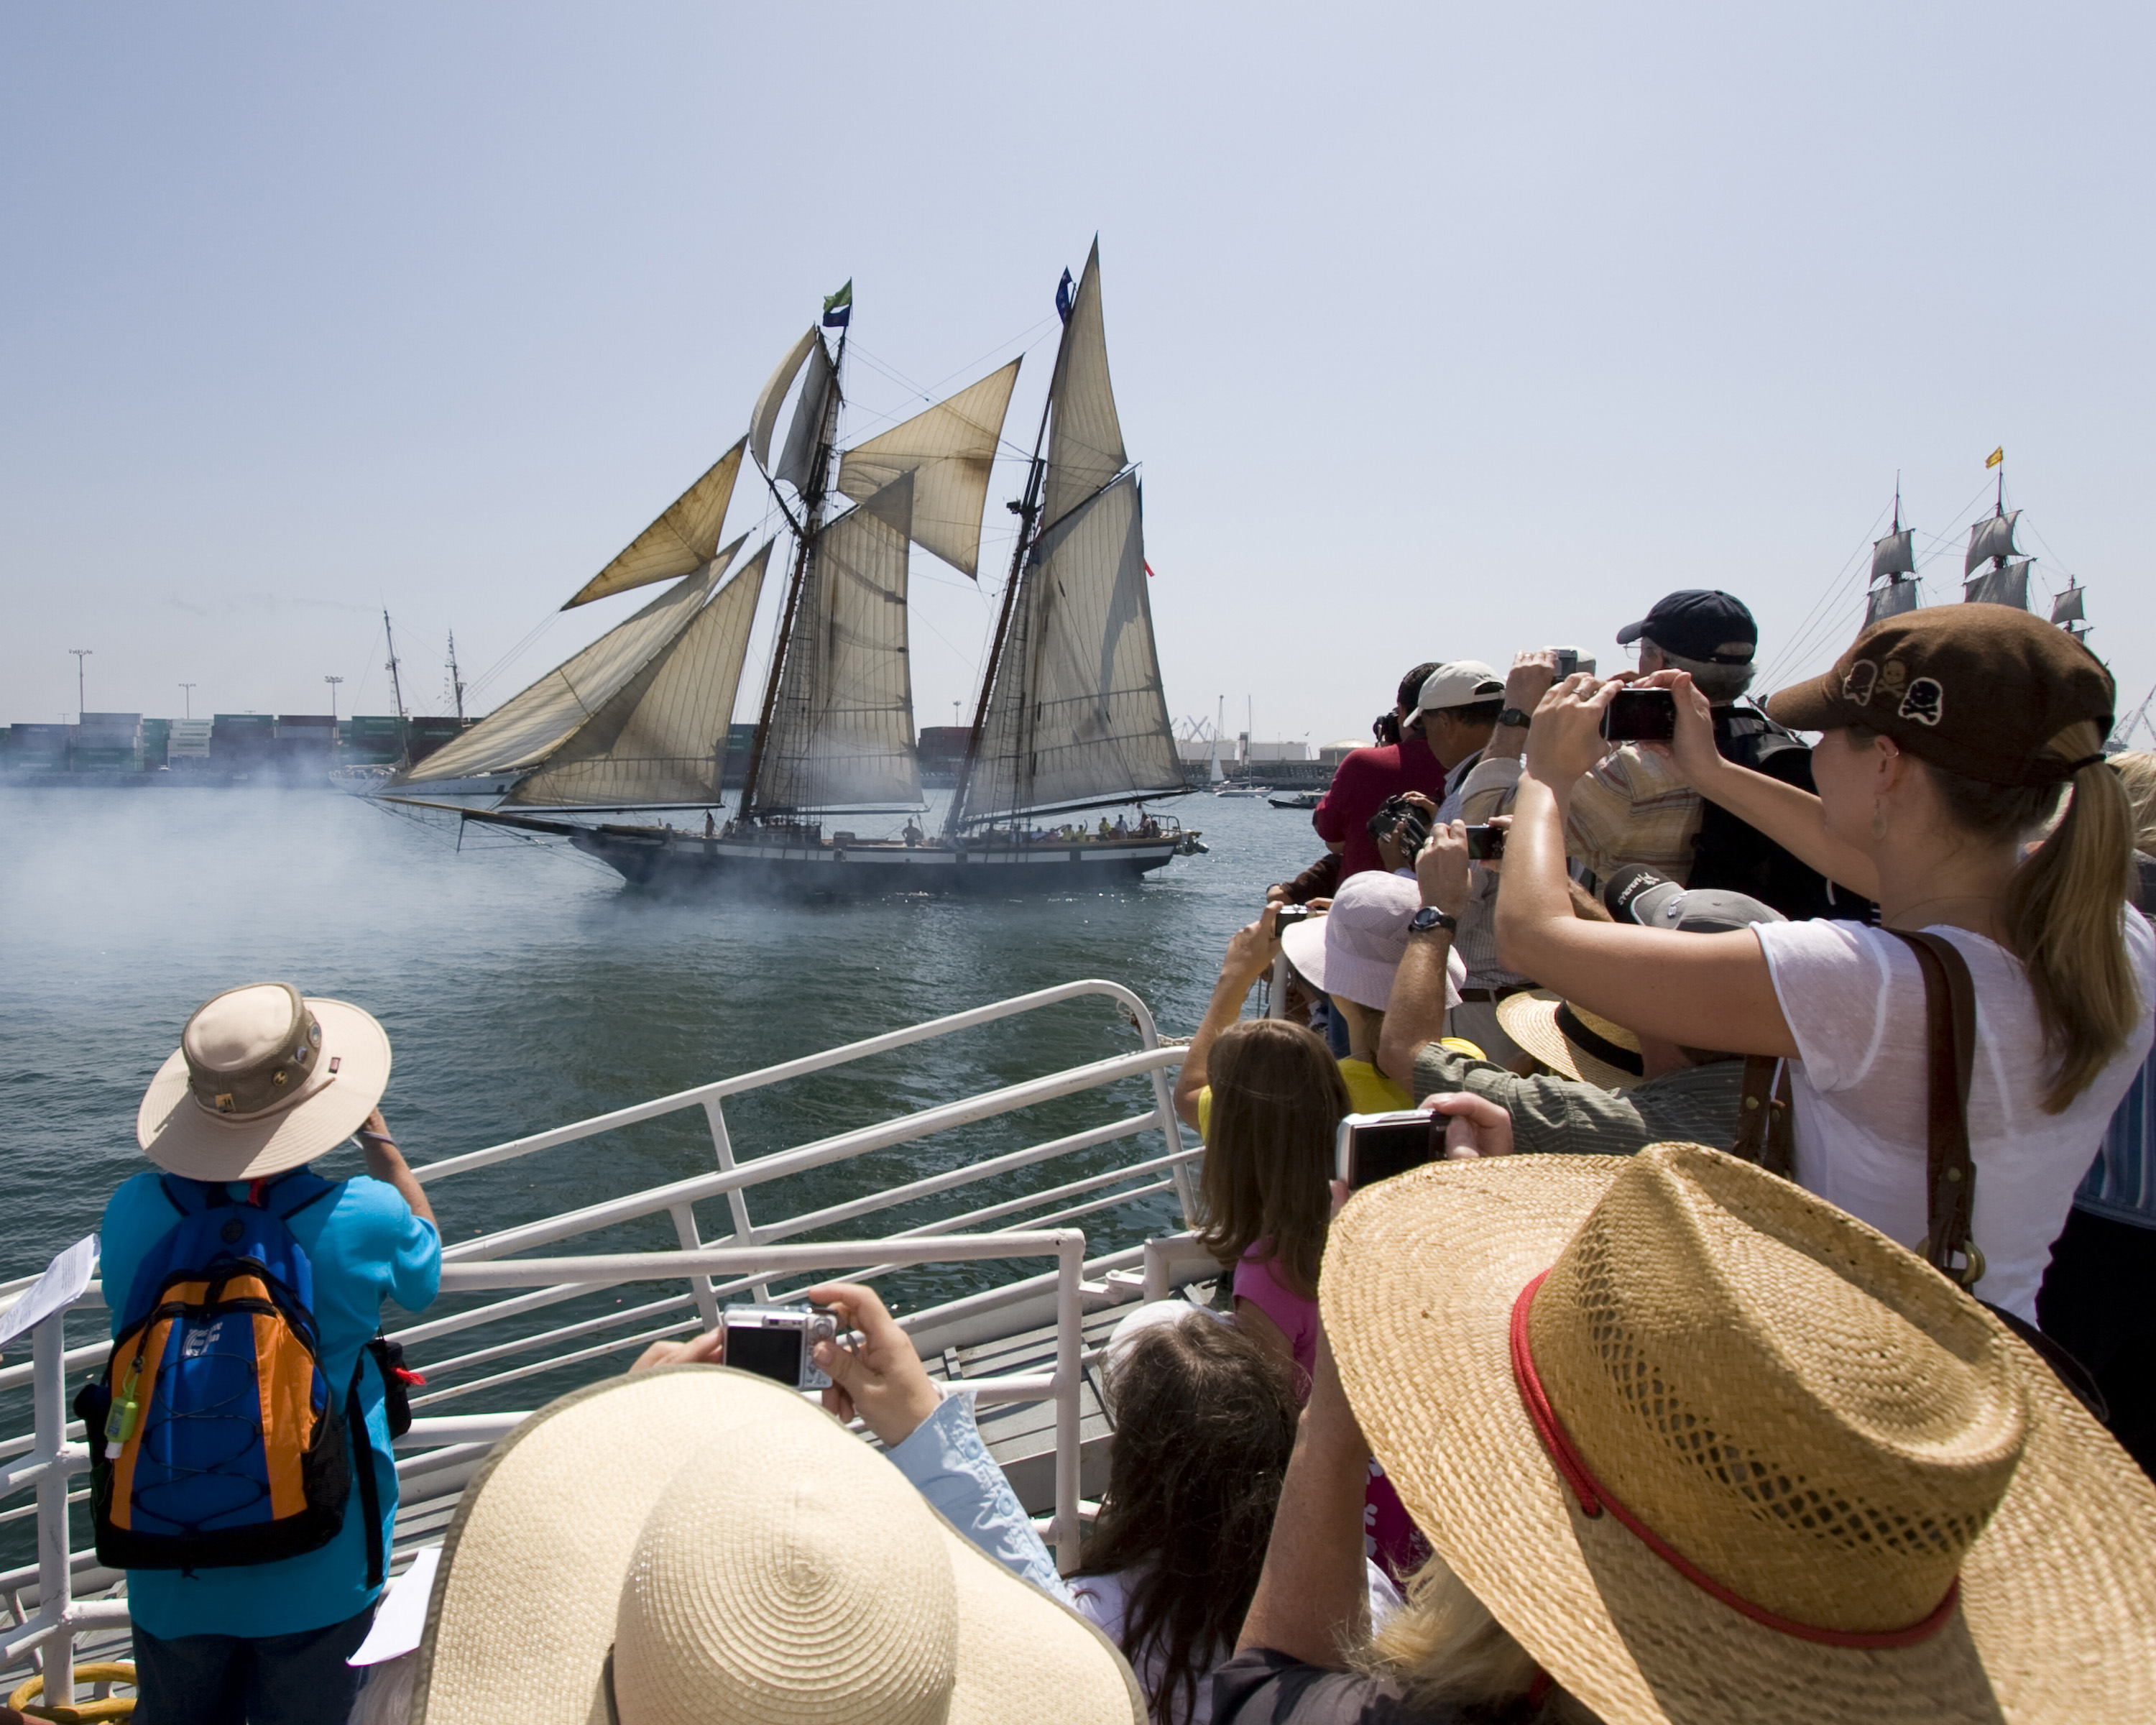 L.A. Waterfront Prepares for Tall Ships Festival 2014